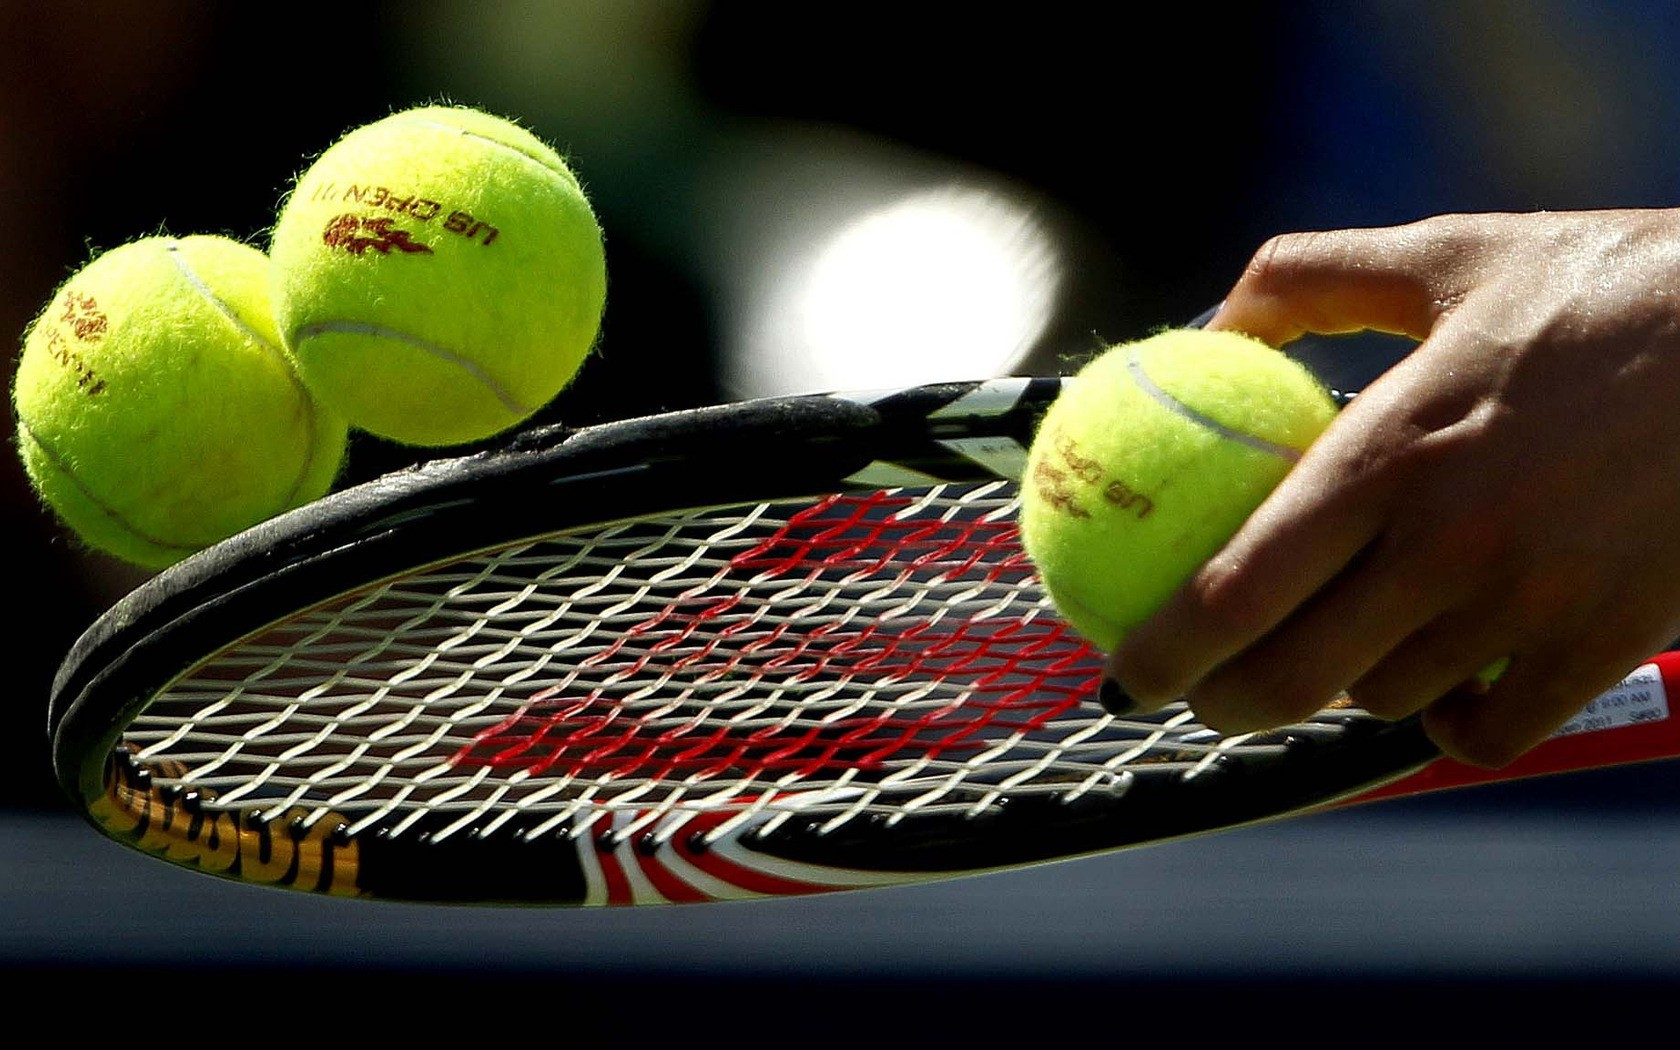 22 Hd Sports Wallpapers Backgrounds Images: 22 Fantastic HD Tennis Wallpapers